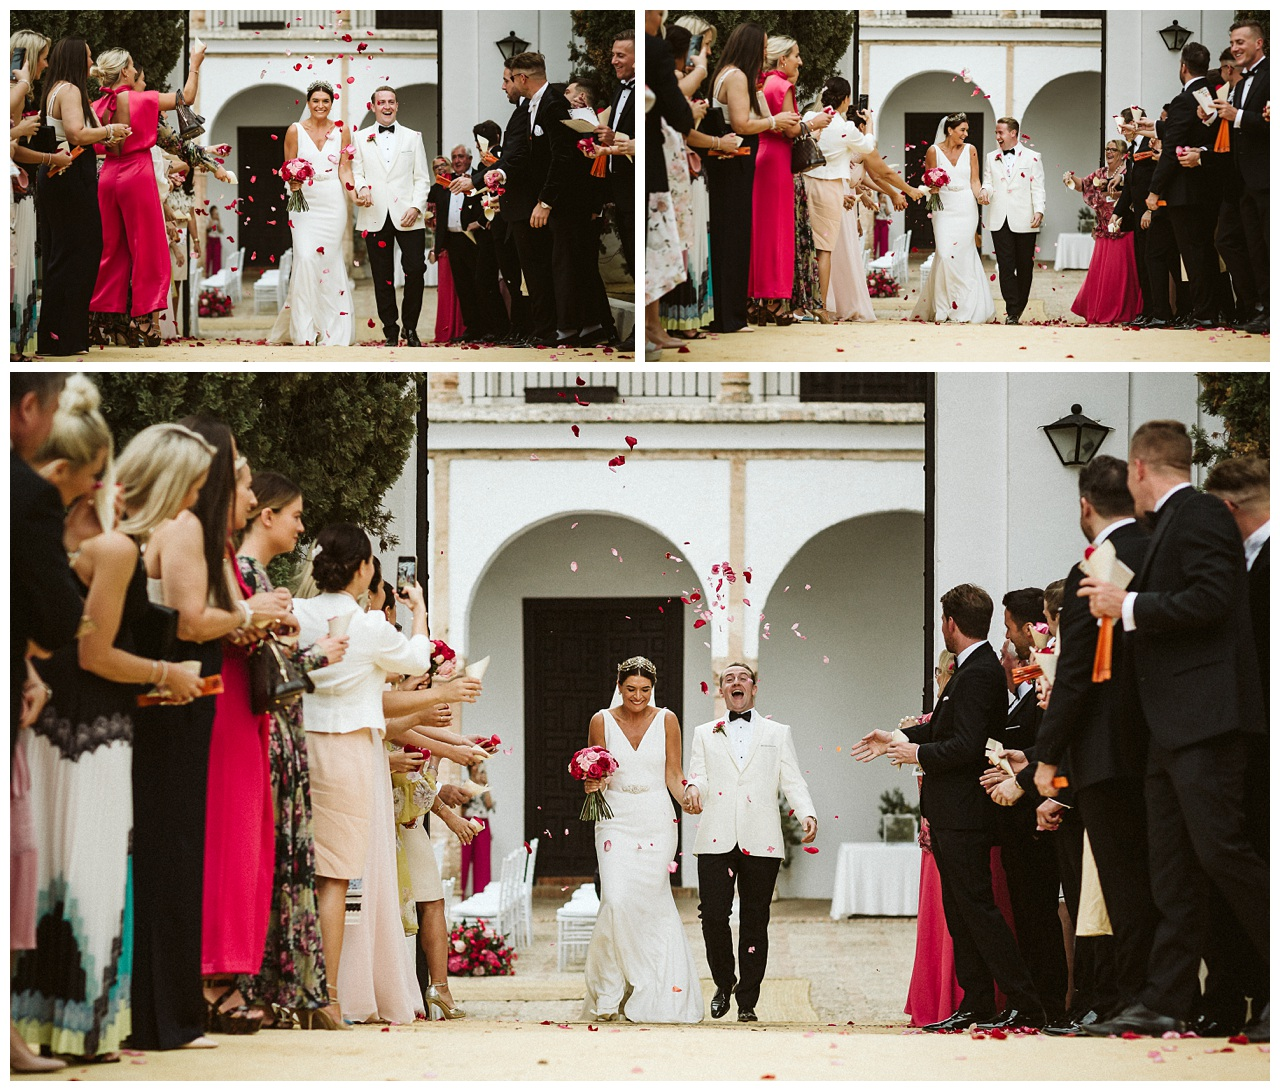 An English wedding in Seville